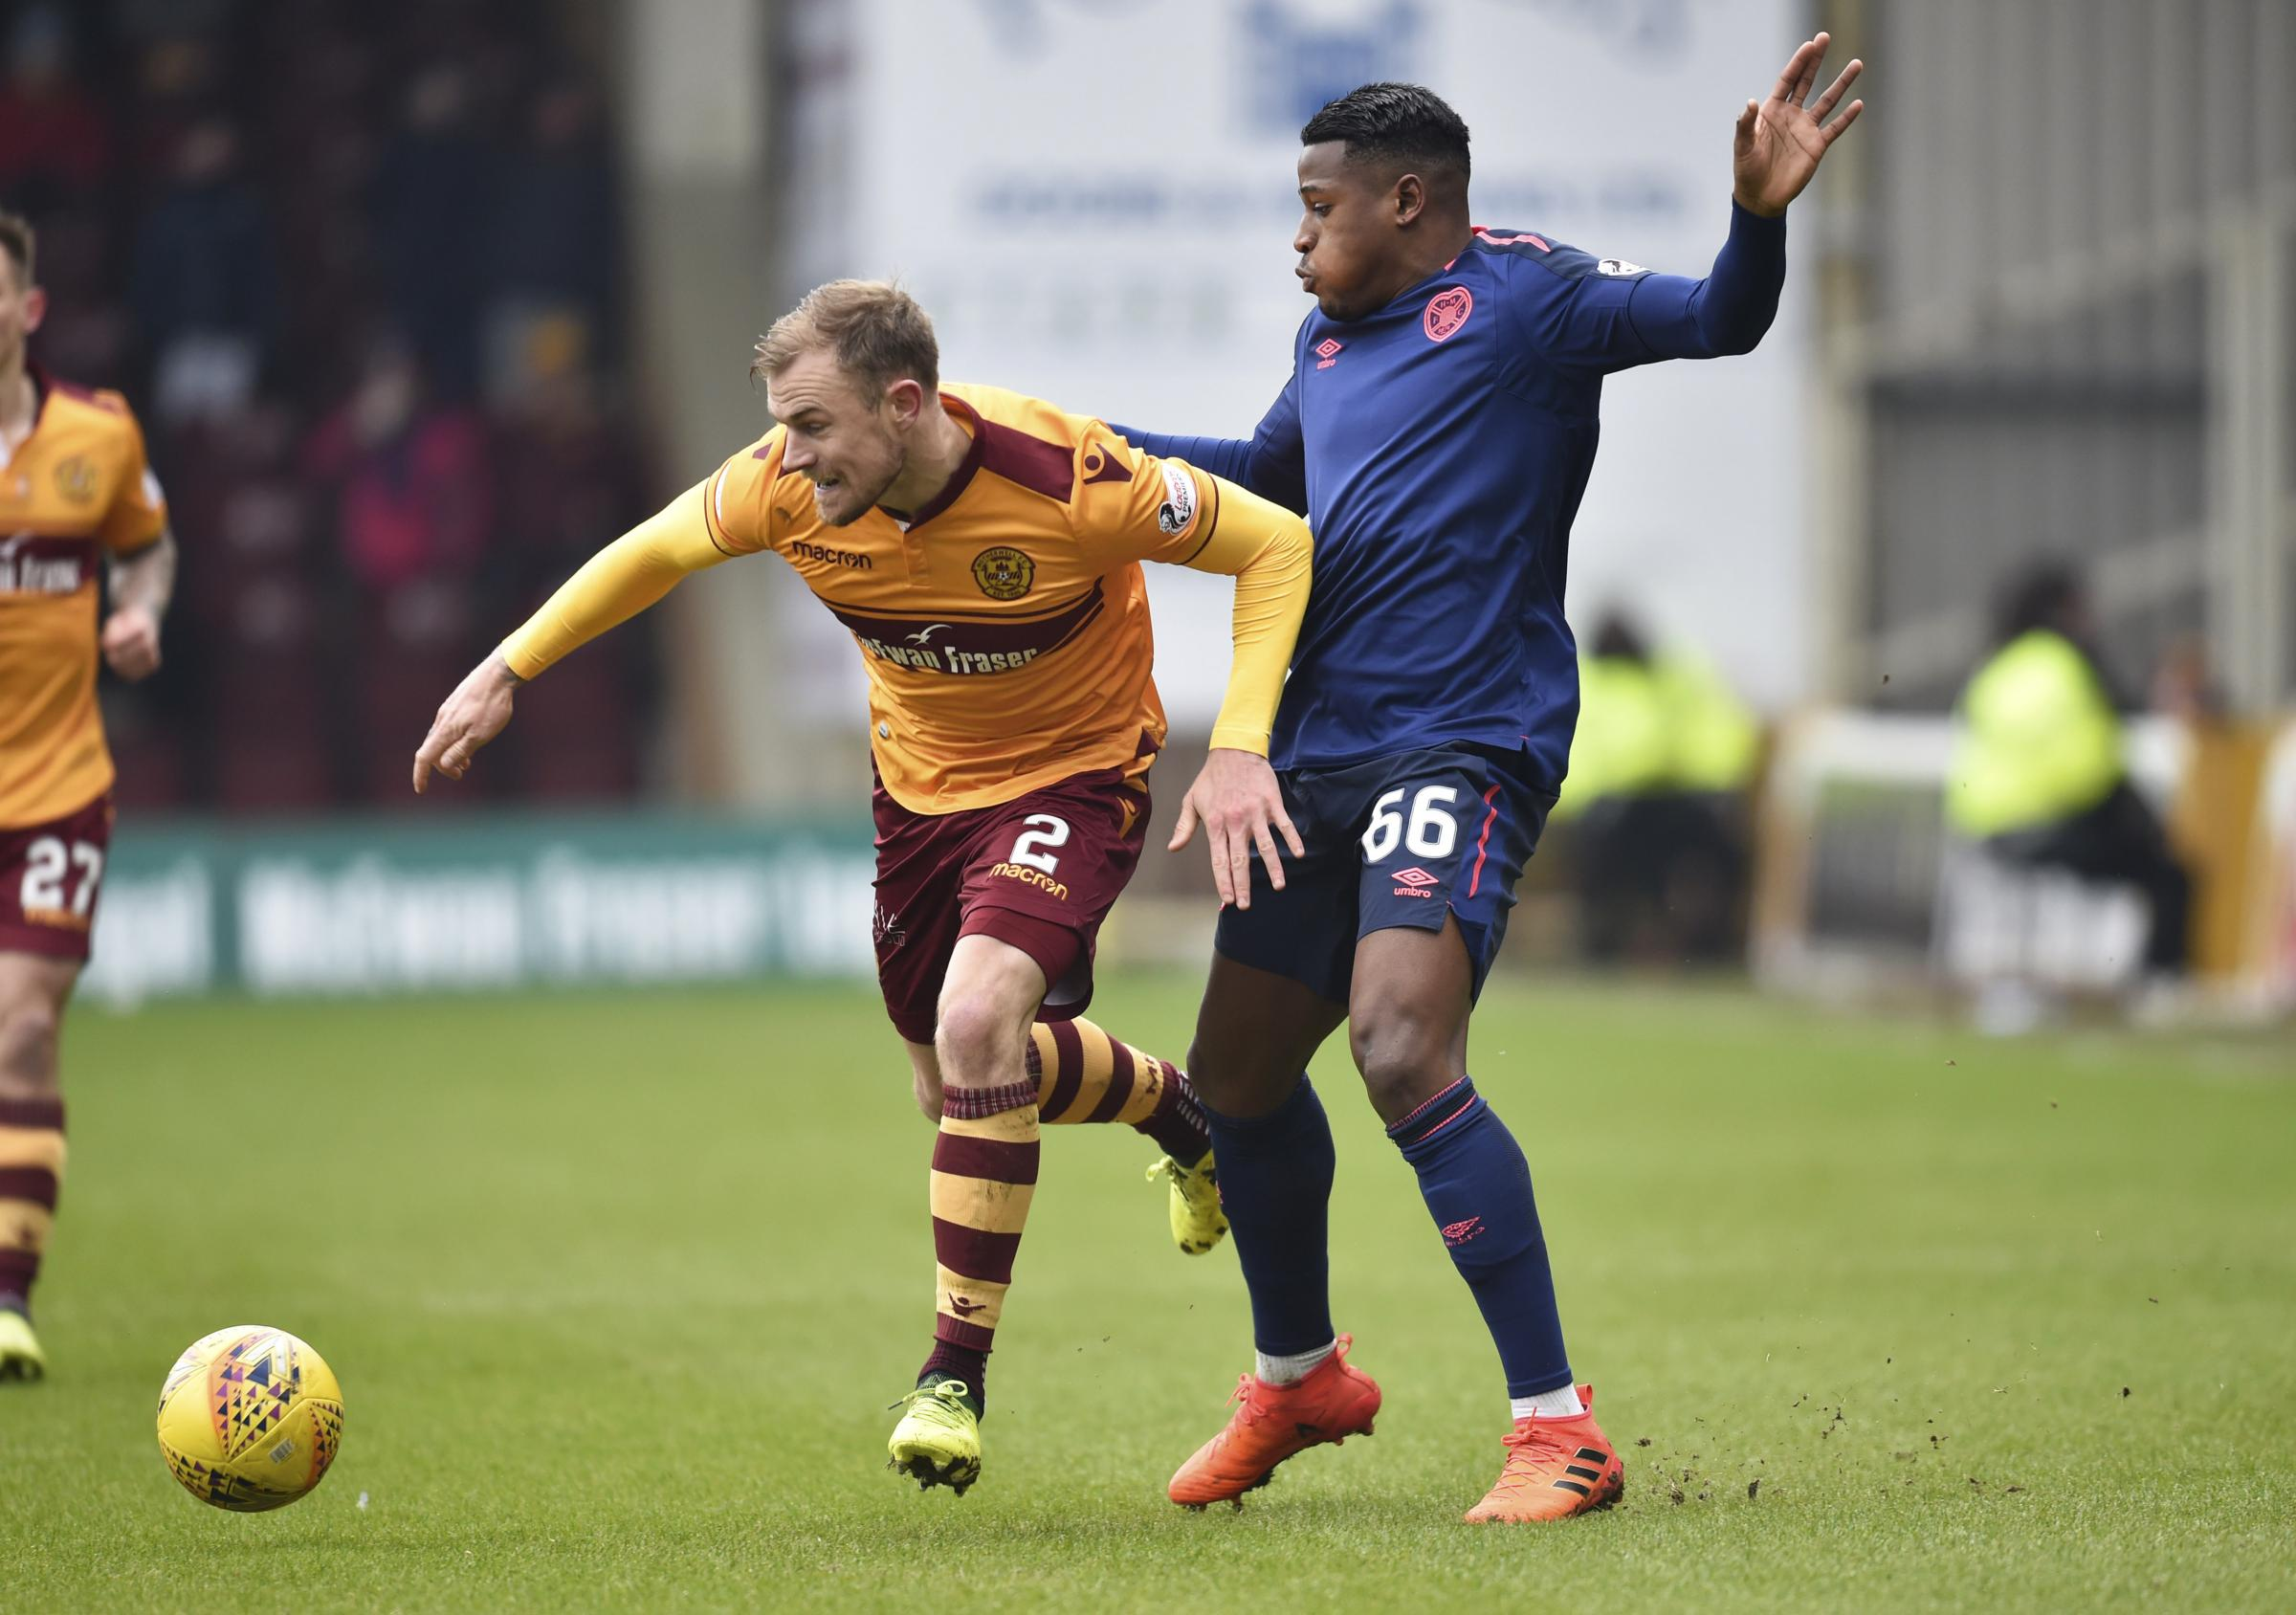 Richard Tait has been consistently impressive for Motherwell this season.